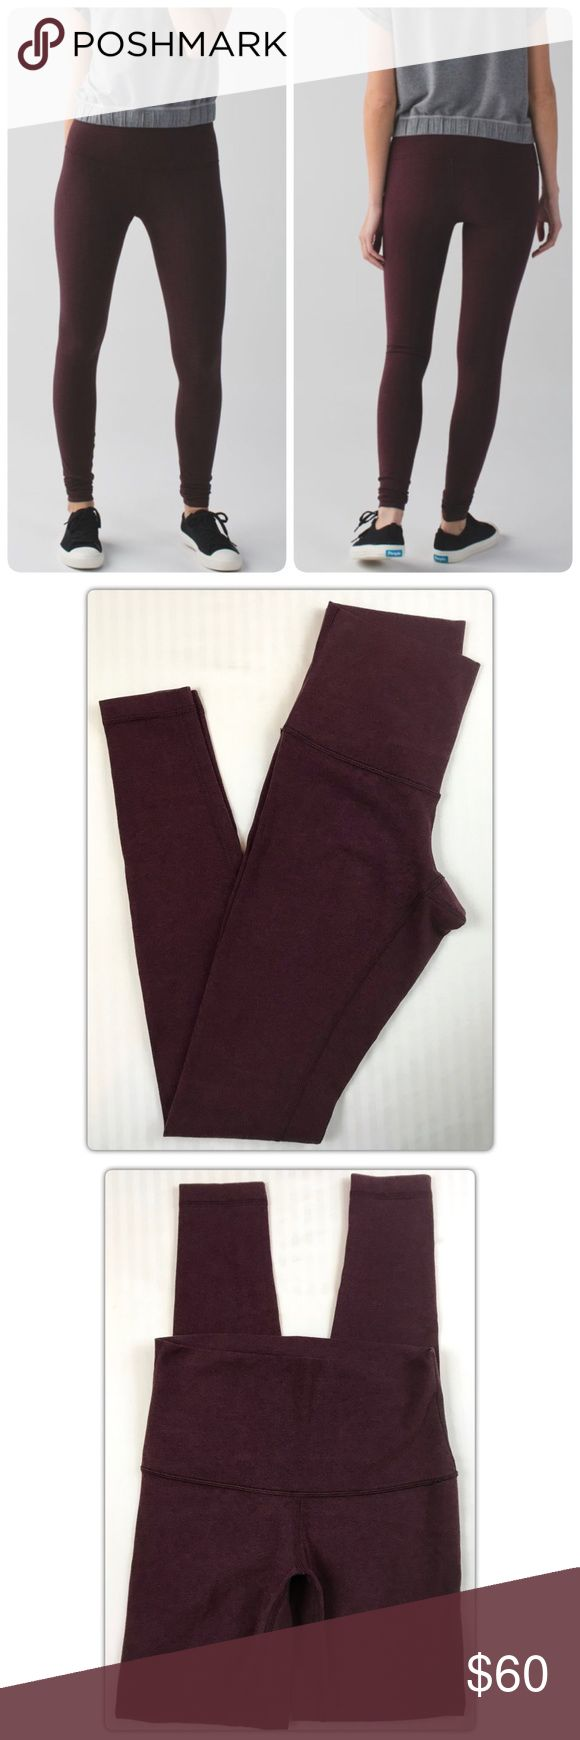 """Lululemon Hi-Rise Cotton Wunder Under Leggings This is a pair of very gently preowned Hi-rise Wunder Under Leggings!  Color: Bordeaux Drama Super soft and stretchy cotton!  four-way stretch Practice Cotton fabric is naturally breathable and feels soft against your skin DIY hemming! Bar tacks along the sides let you customize the length (without worrying about unraveling seams)  Fit + function fabric(s): Practice Cotton rise: high or low - you choose! inseam: 30 1/4"""" leg opening: 7 3/4""""…"""